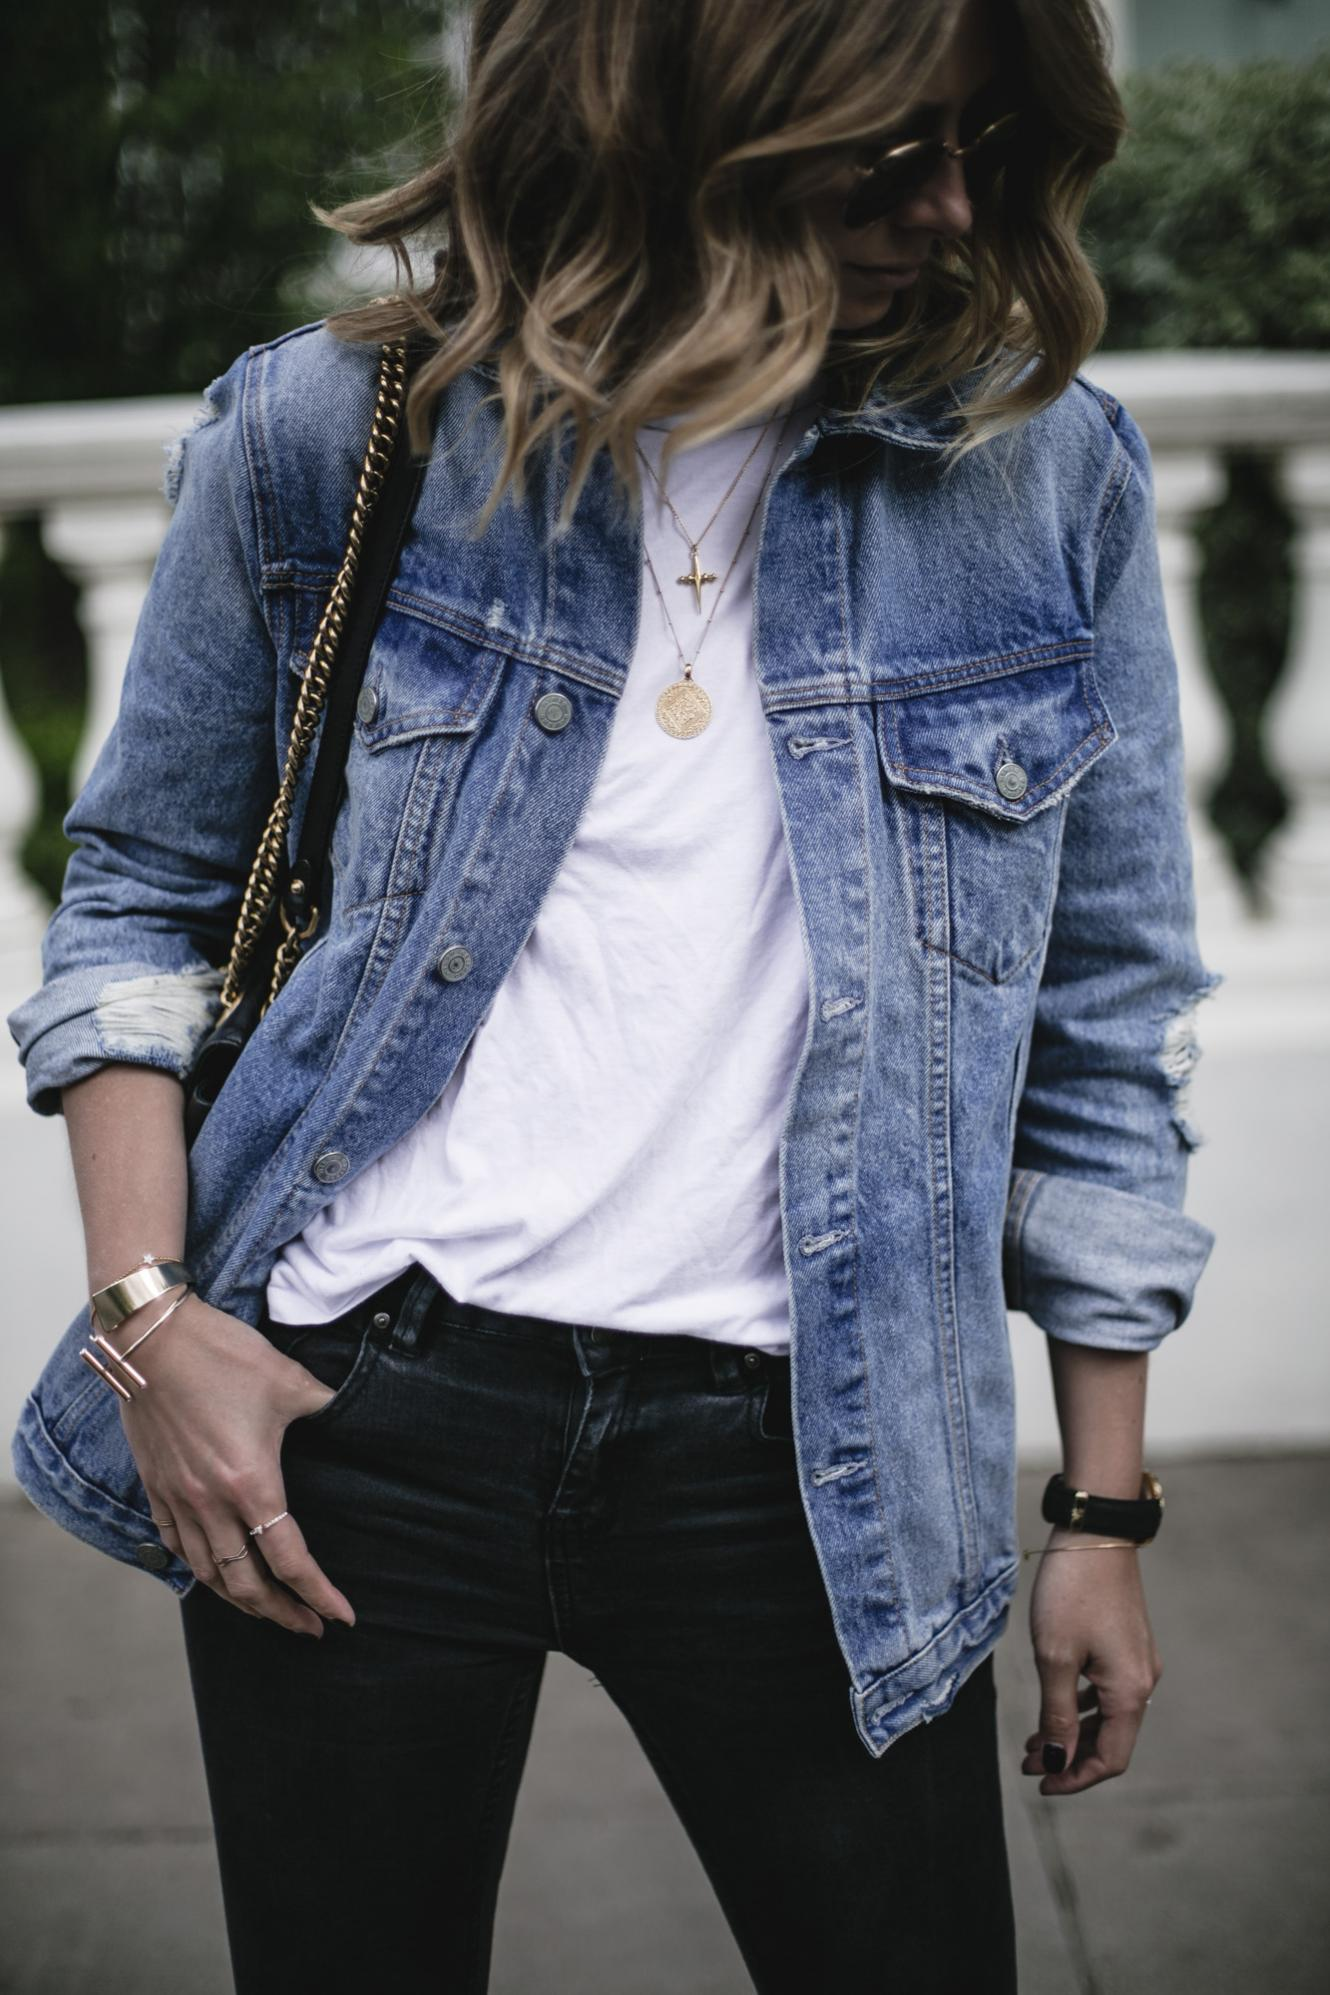 Emma Hill wears Grlfrnd oversized denim jacket, white t-shirt, black skinny jeans, gold jewellery